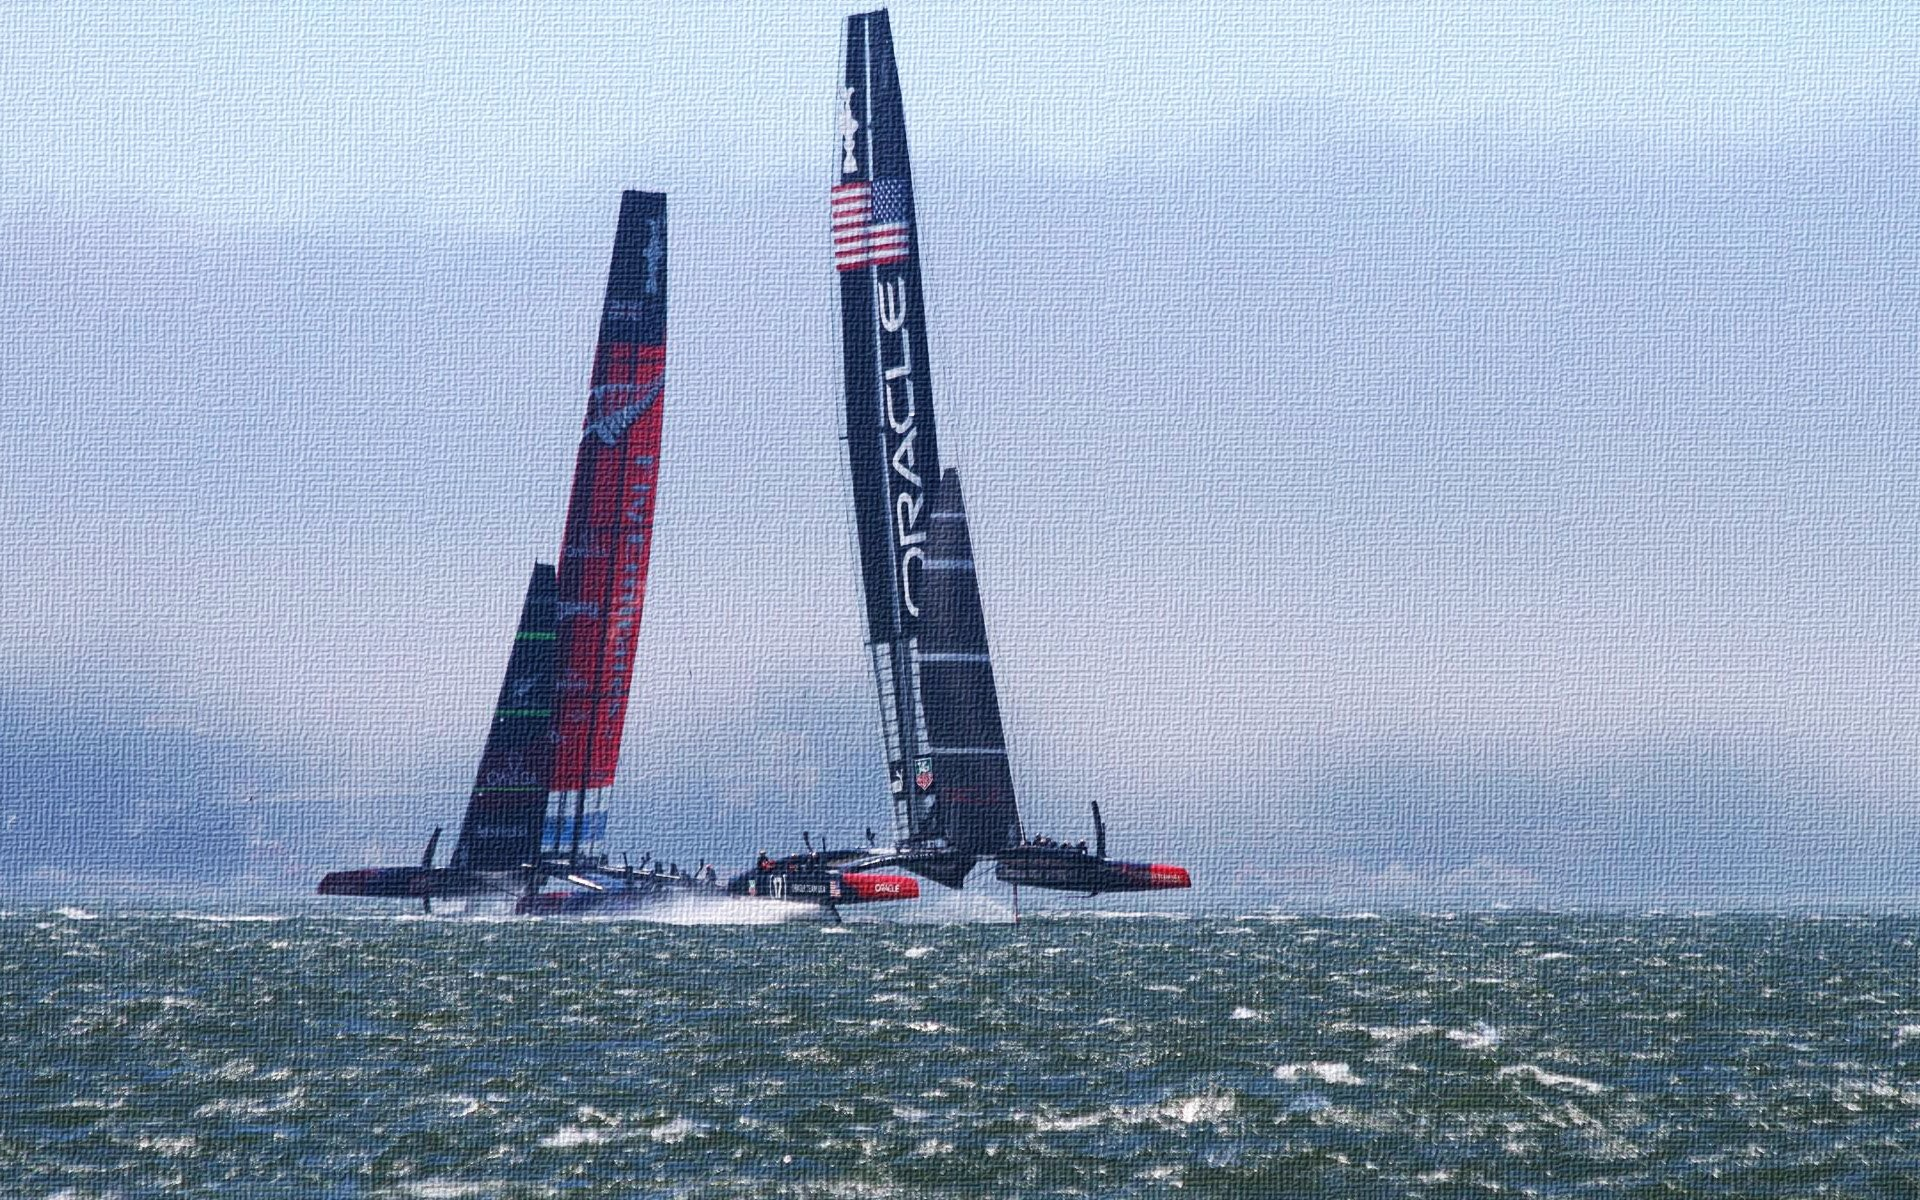 1920x1200 San francisco americas cup boat race sailboat race sail boat boat wallpaper  |  | 631260 | WallpaperUP